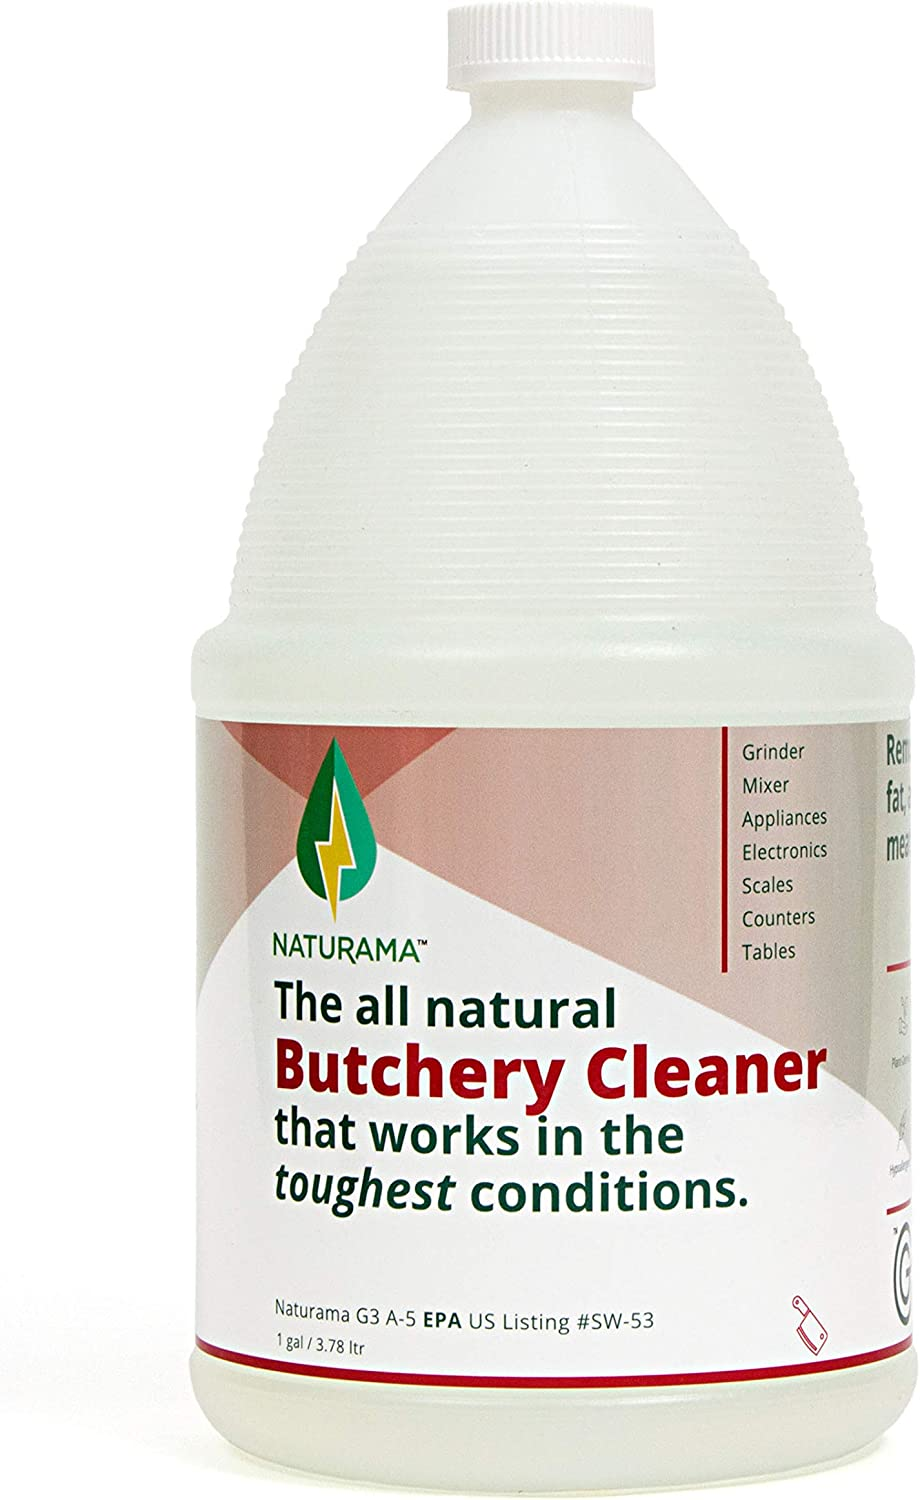 Naturama, All Natural Butchery Cleaner, Butchery Supplies, Home Butchering Supplies, Meat Processing Supplies Eco-Friendly. Safe Around Kids and Pets. Powerful, Odor-Free, Non Toxic. (1G)